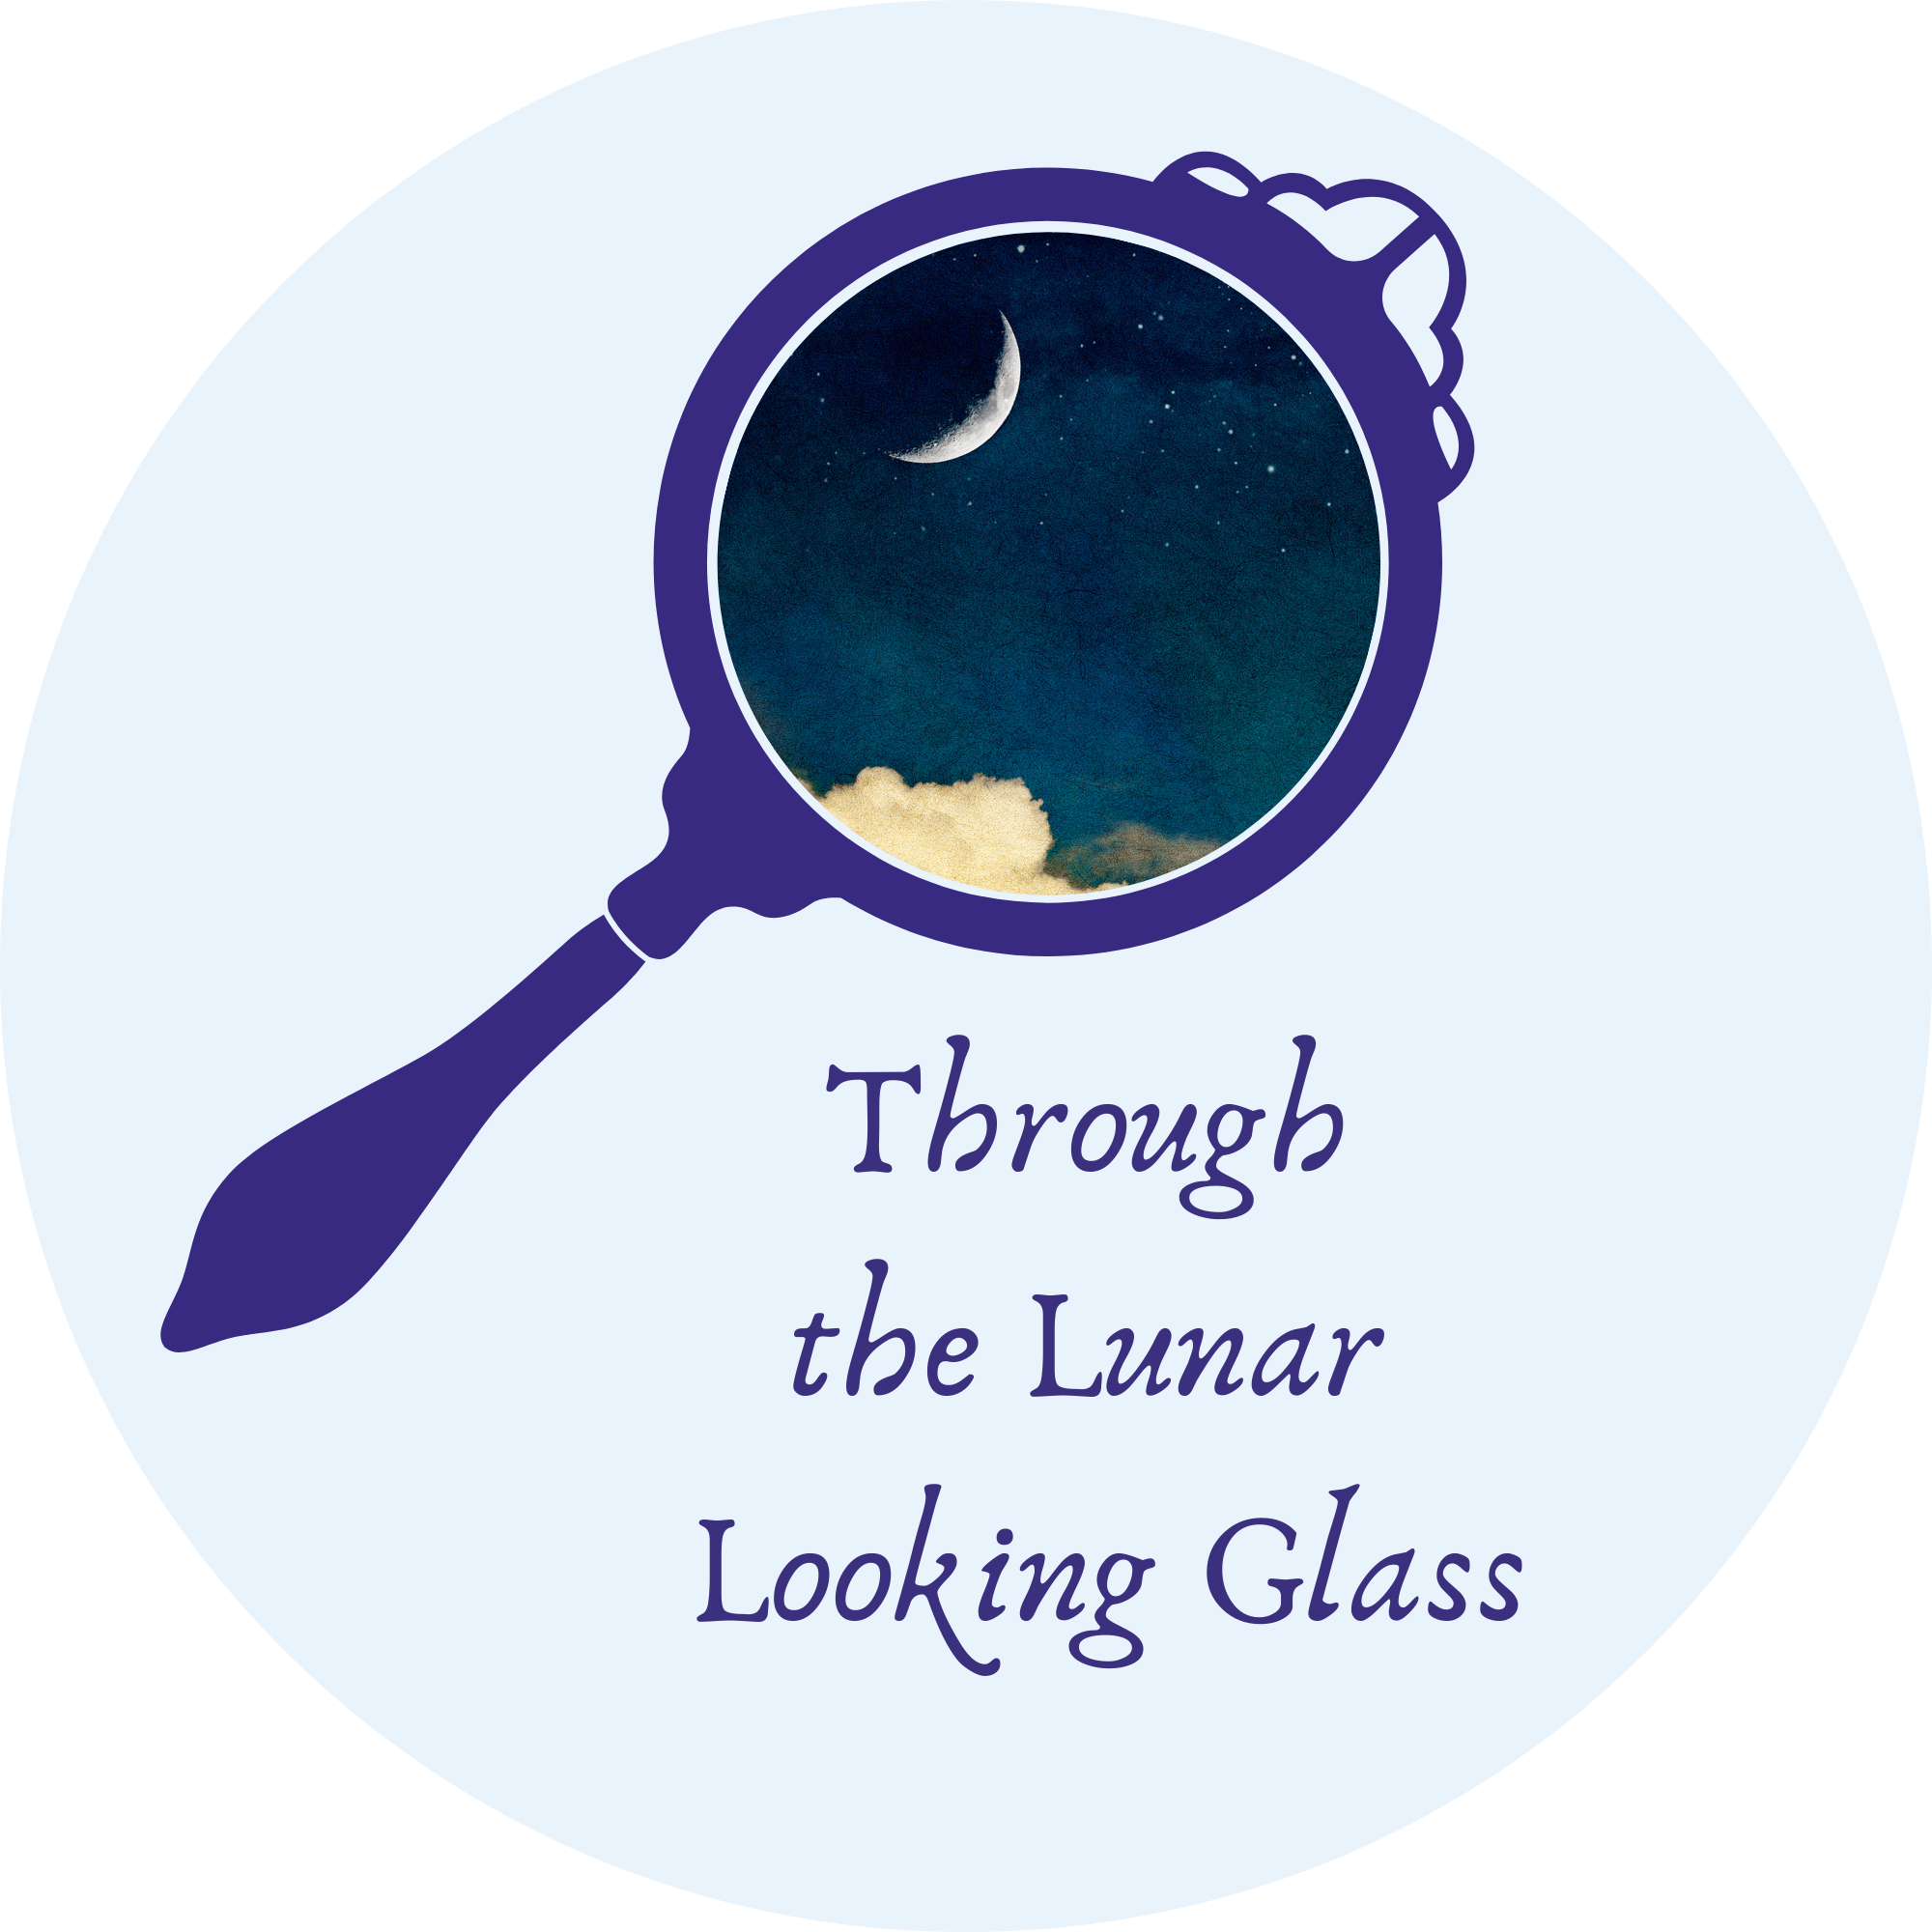 Through the Lunar Looking Glass in Circle